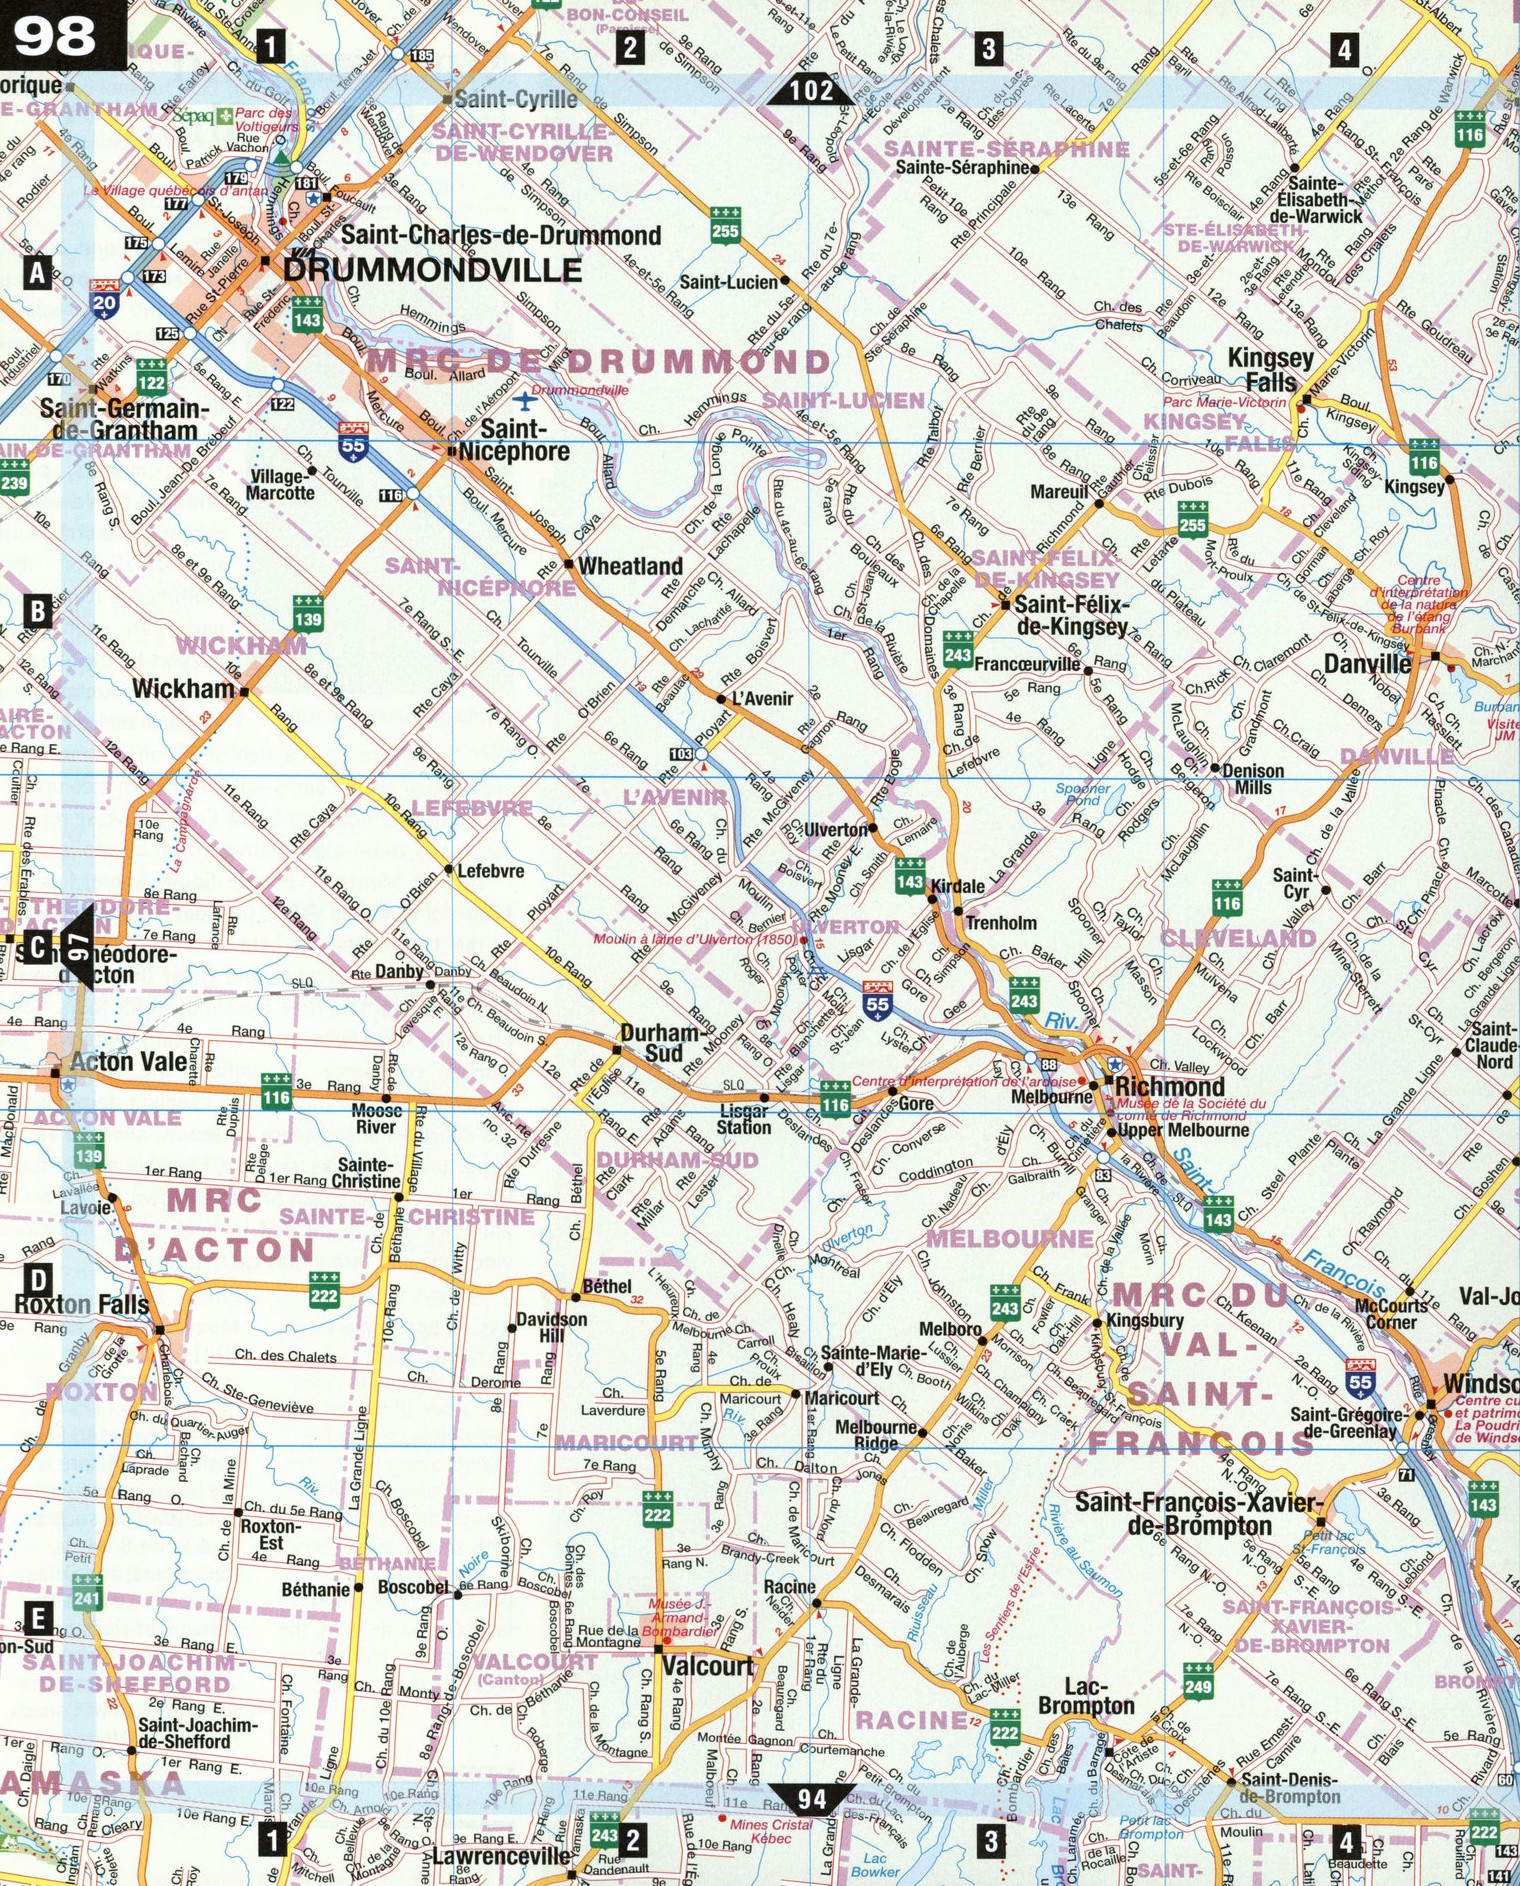 Drummondville and Centre-du-Quebec on belgium highway map, seattle highway map, portland highway map, france highway map, japan highway map, england highway map, italy highway map, miami highway map, appalachian mountains highway map, cincinnati highway map, north america highway map, new zealand highway map, romania highway map, portugal highway map, cape breton island highway map, paris highway map, delaware highway map, houston highway map, nashville highway map, bc highway map,